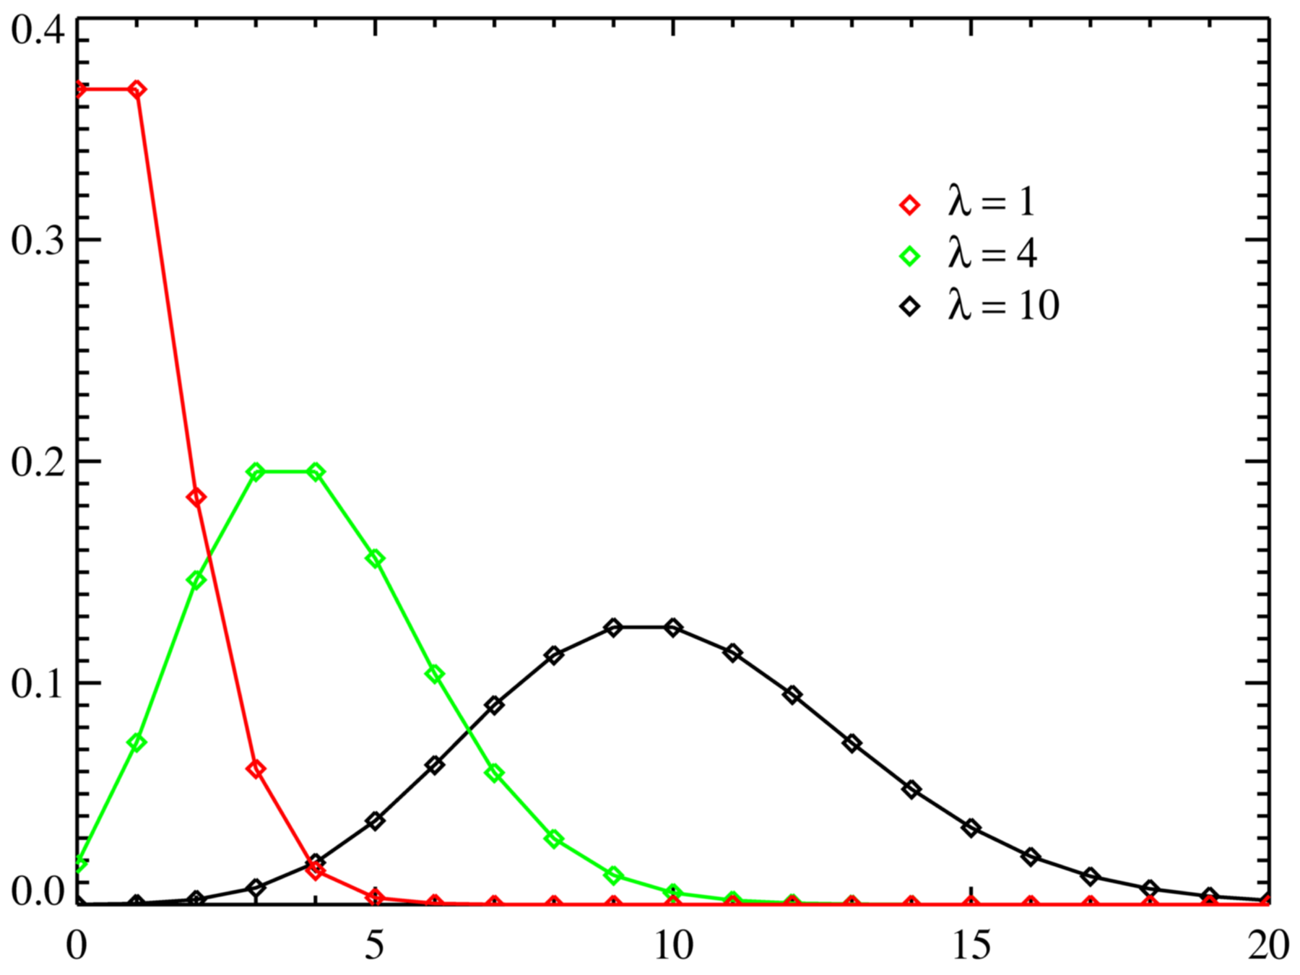 Poisson Distribution: What is it?